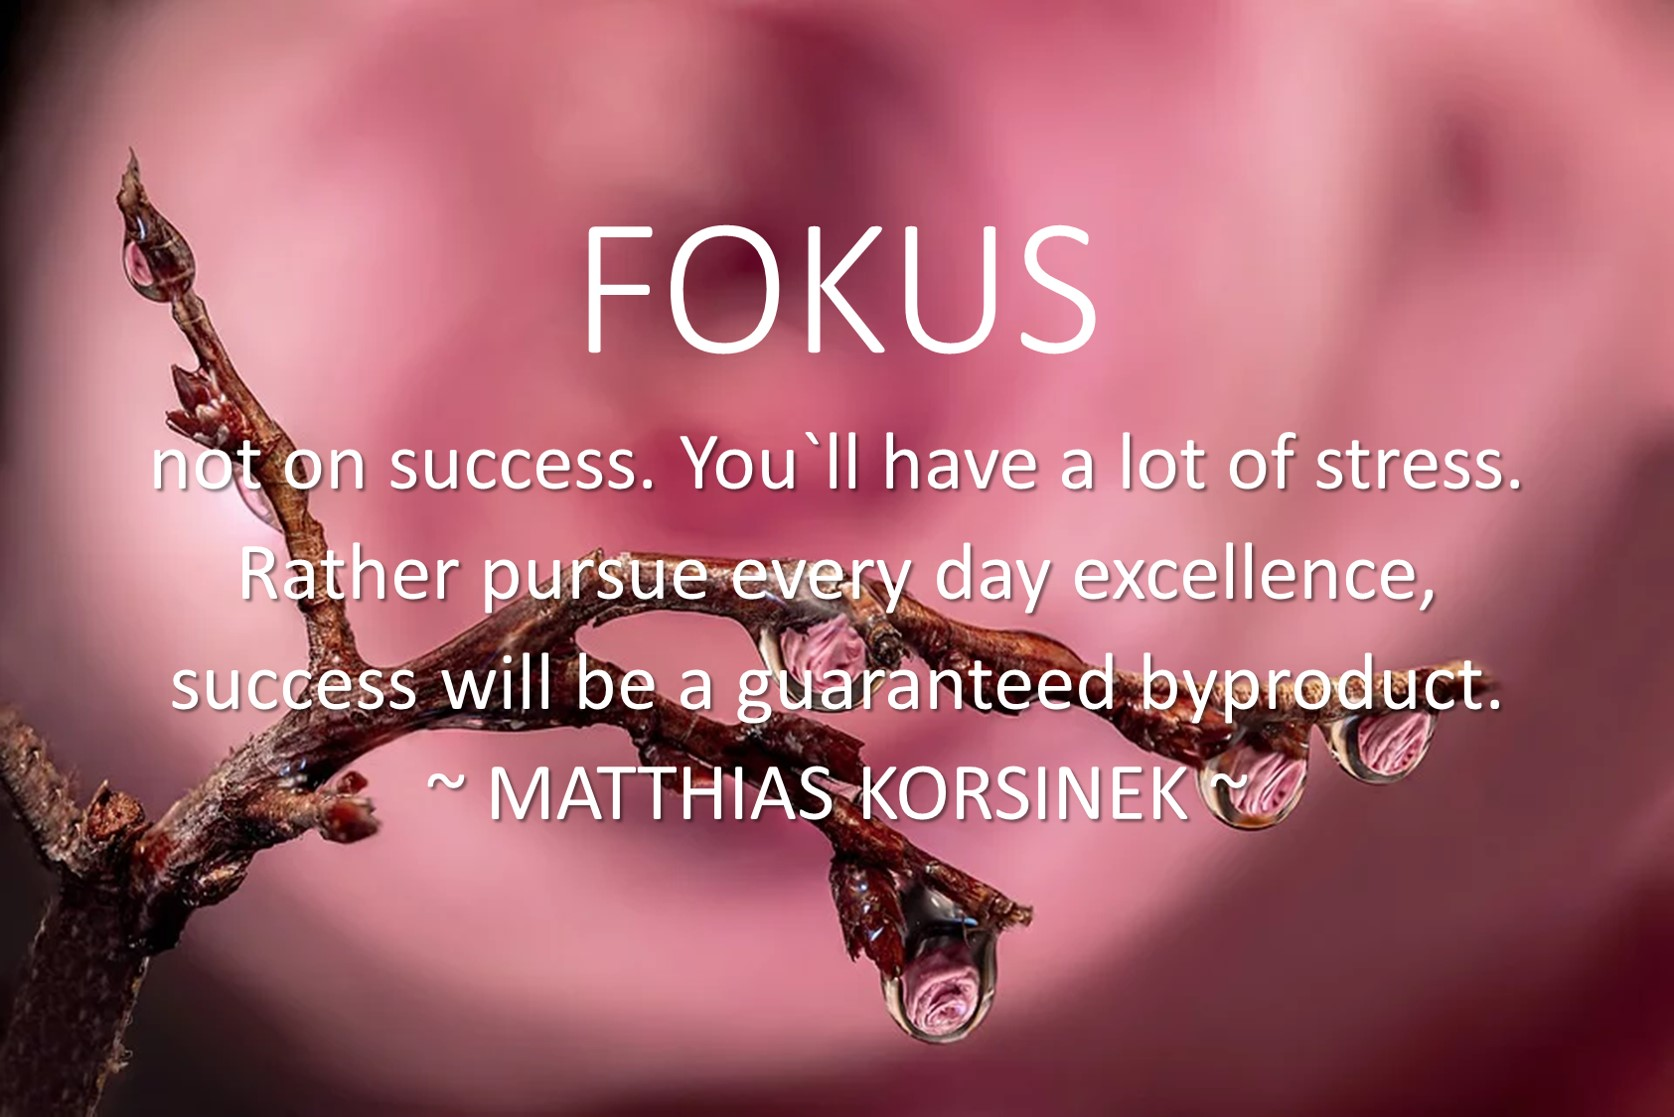 FOKUS not on success but on excellence